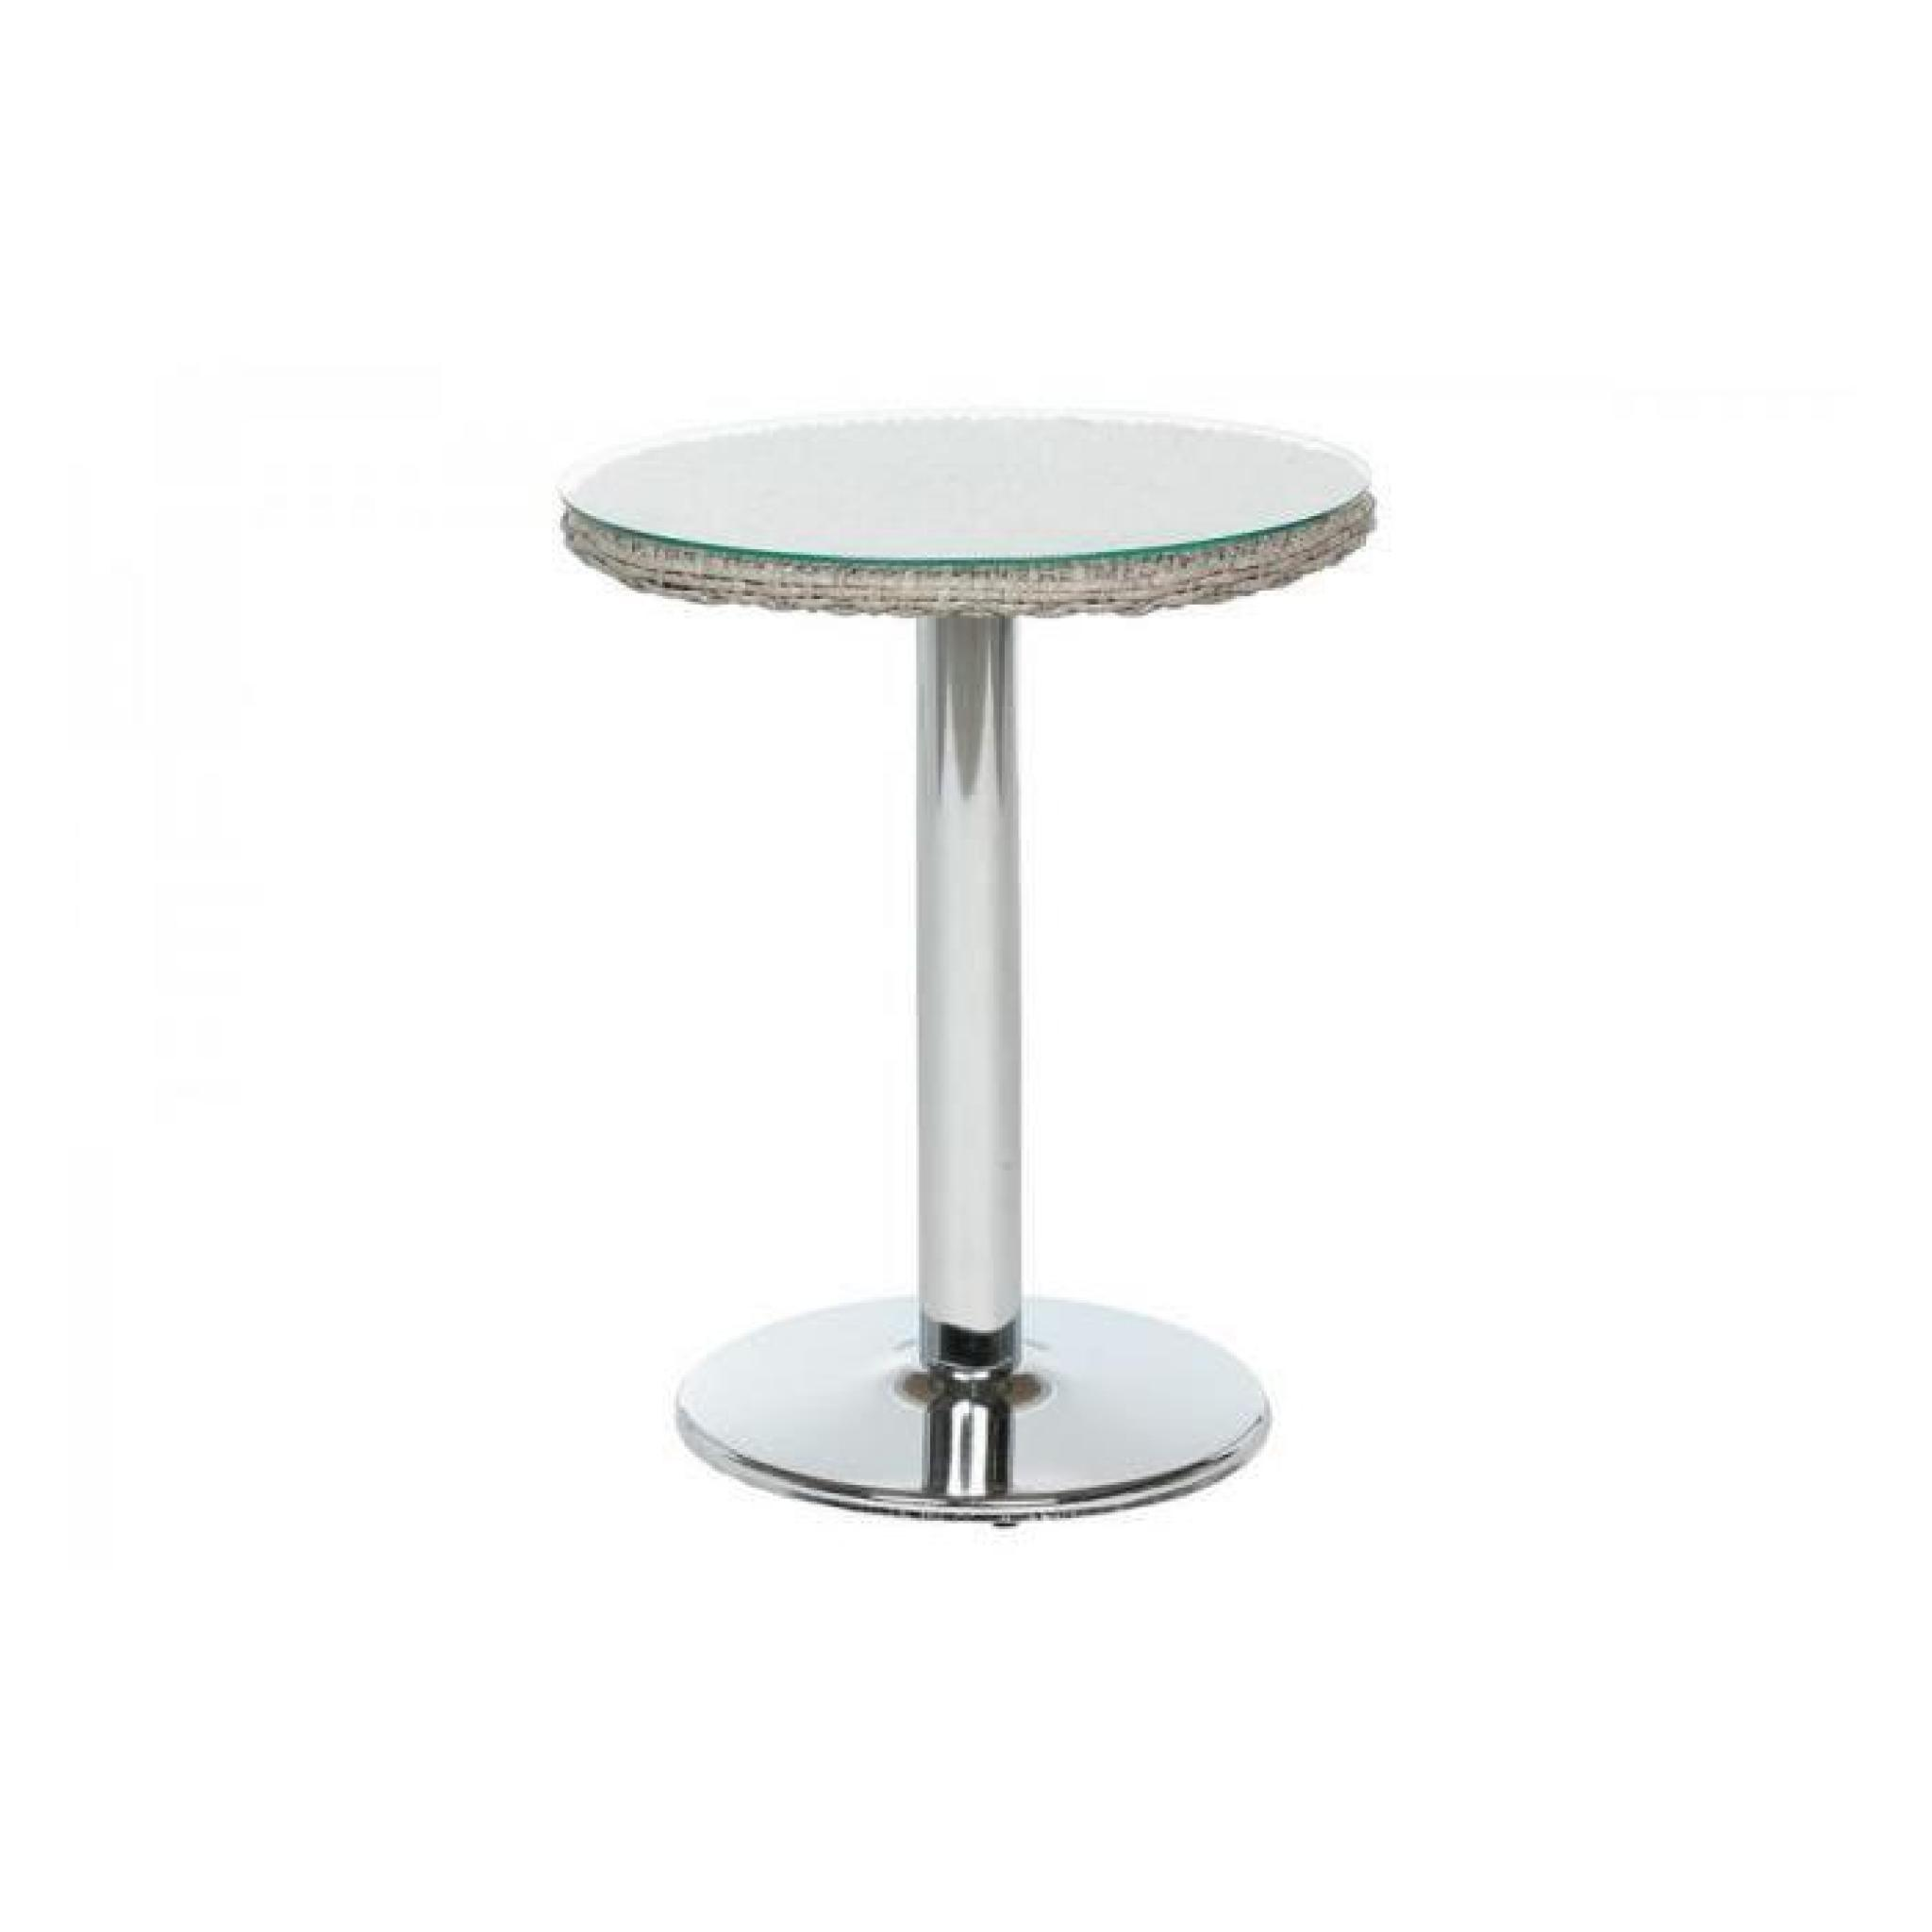 Table bistro exterieur ronde libertad sepia hesperide for Table exterieur plastique noir